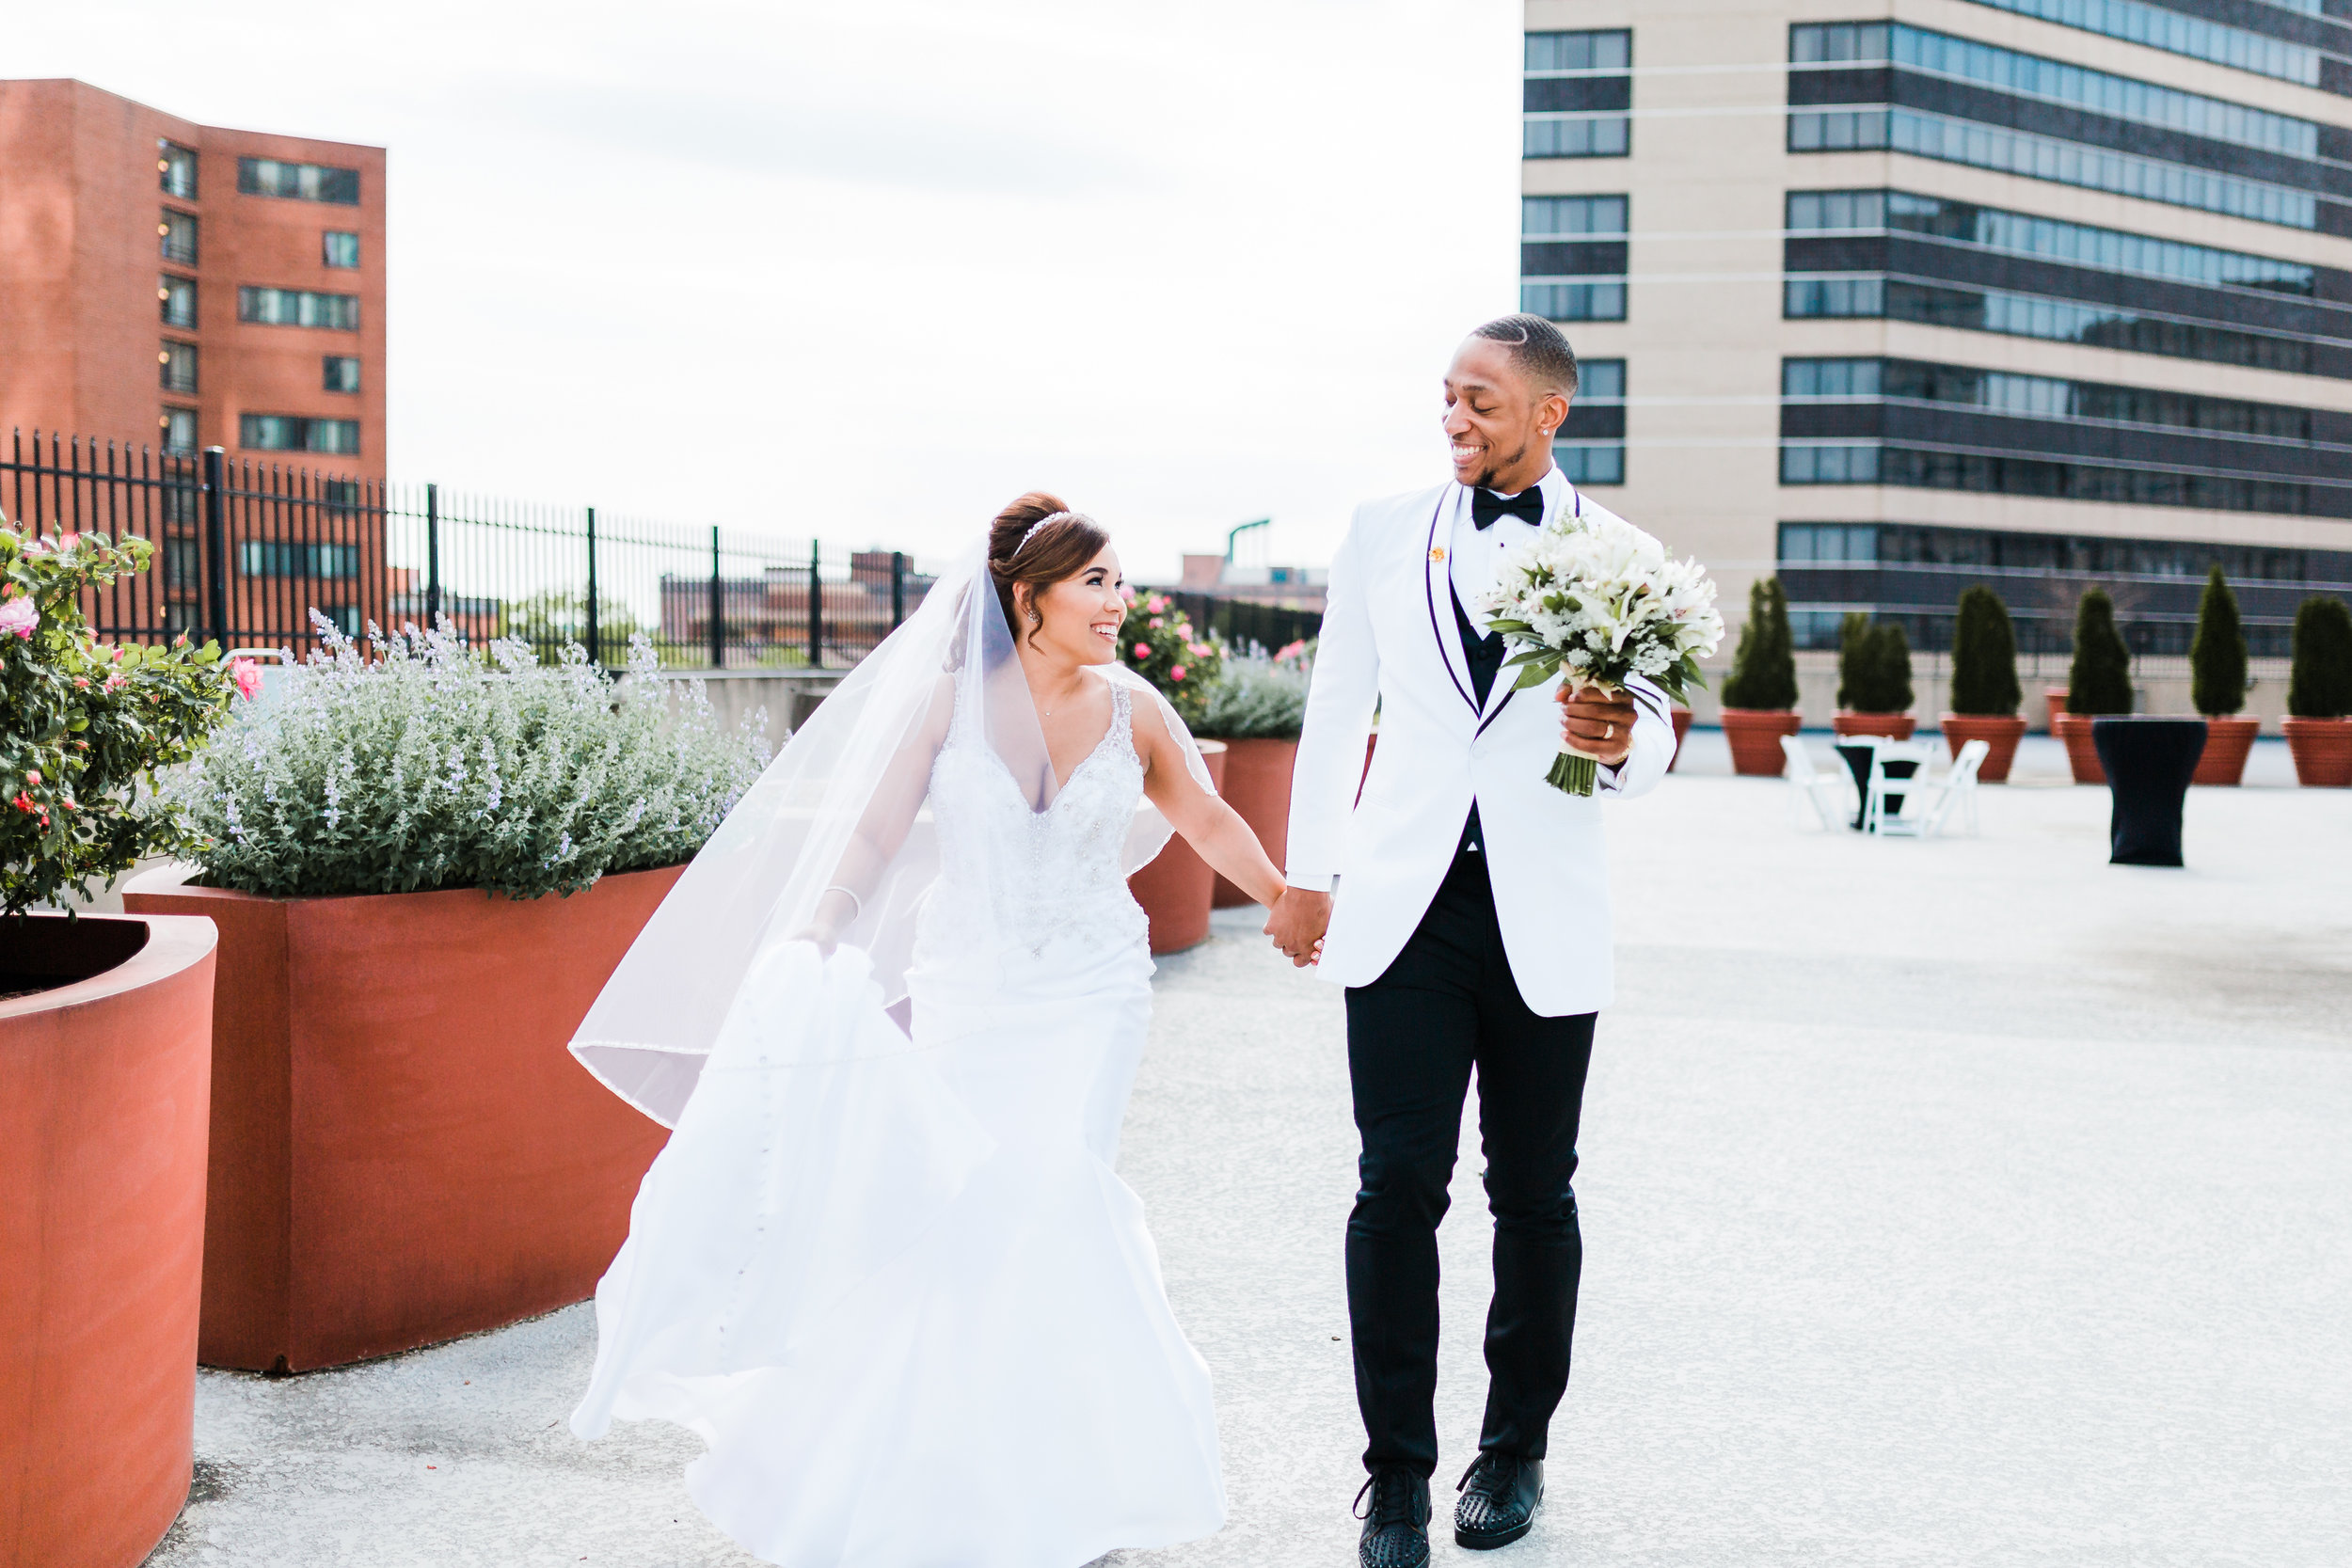 bride and groom laughing together - maryland wedding photographer